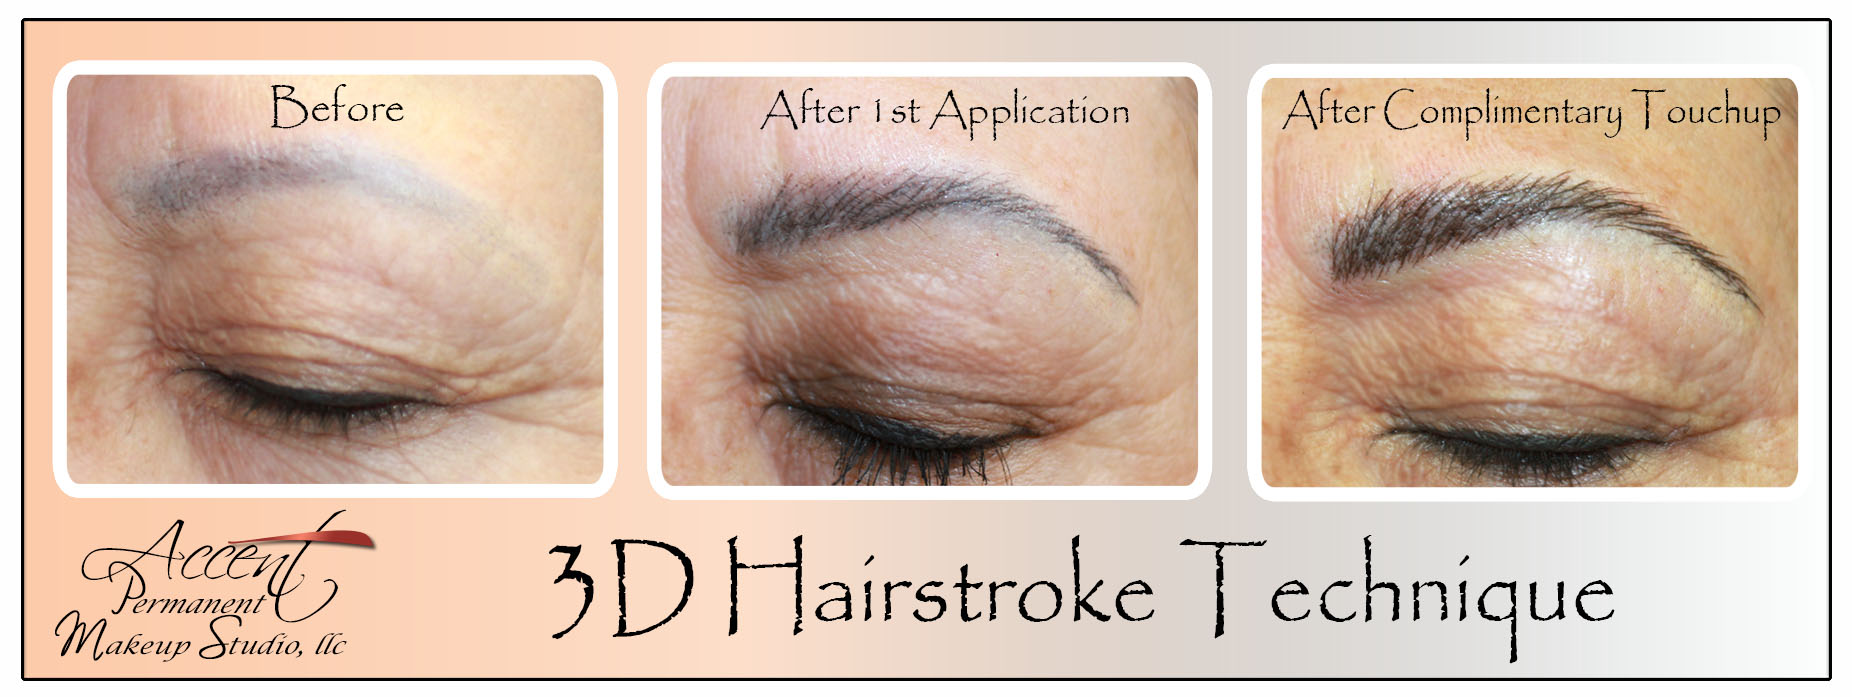 Accent Permanent Makeup Home Page Ideas And Designs